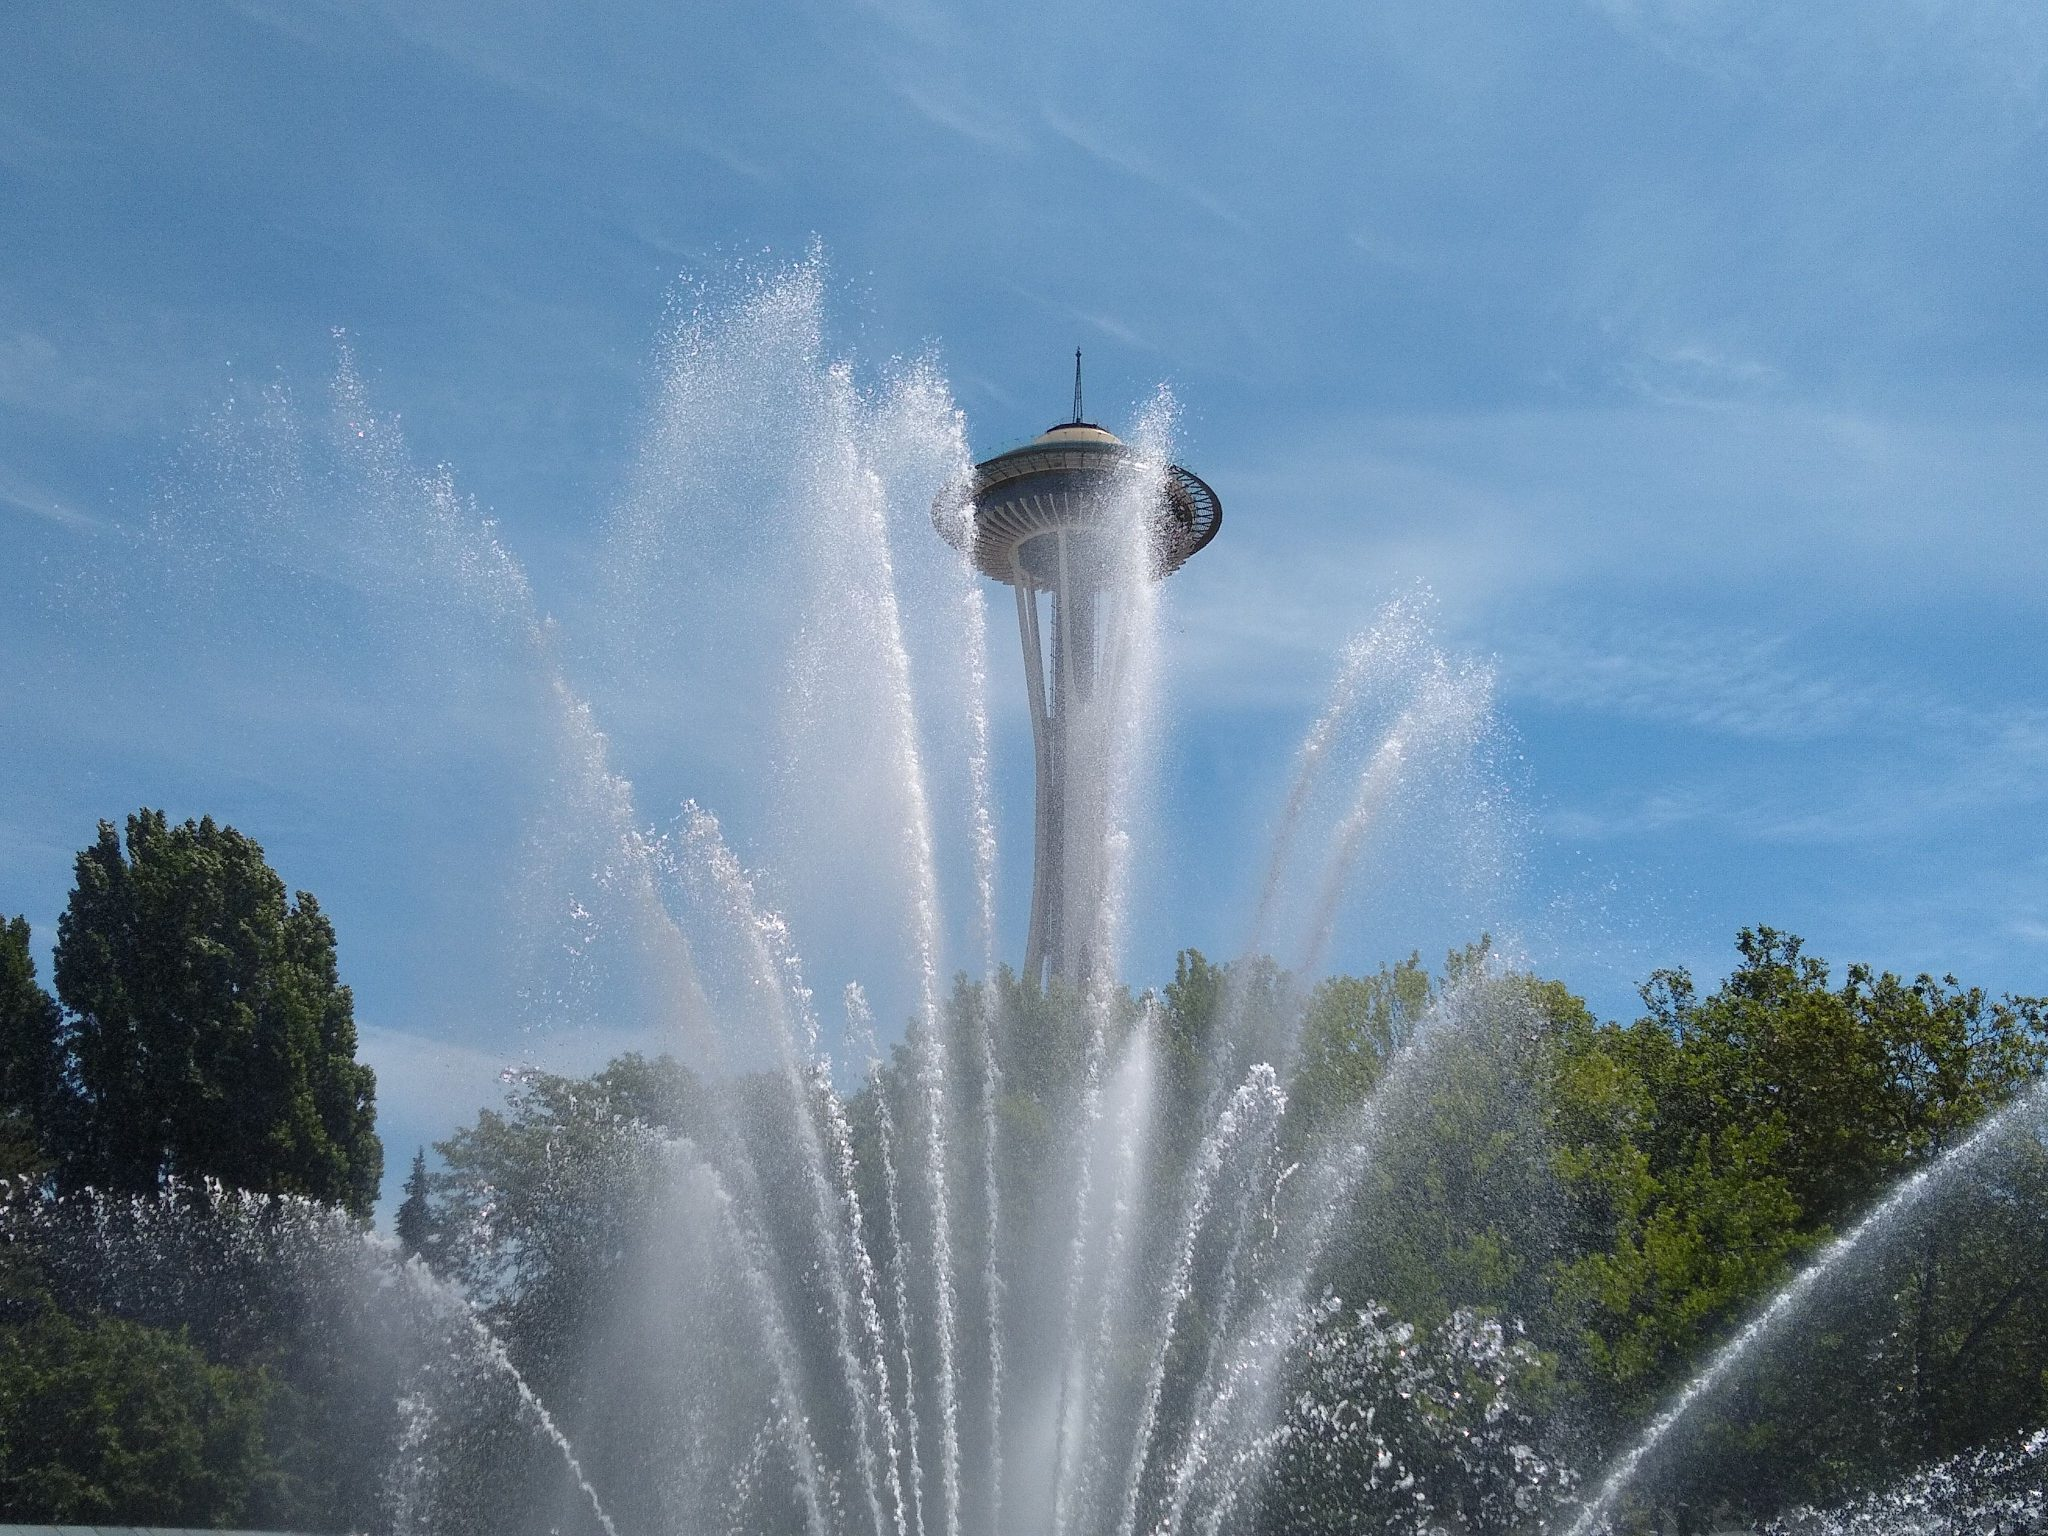 A fountain is spraying in front of green trees and the Space Needle.